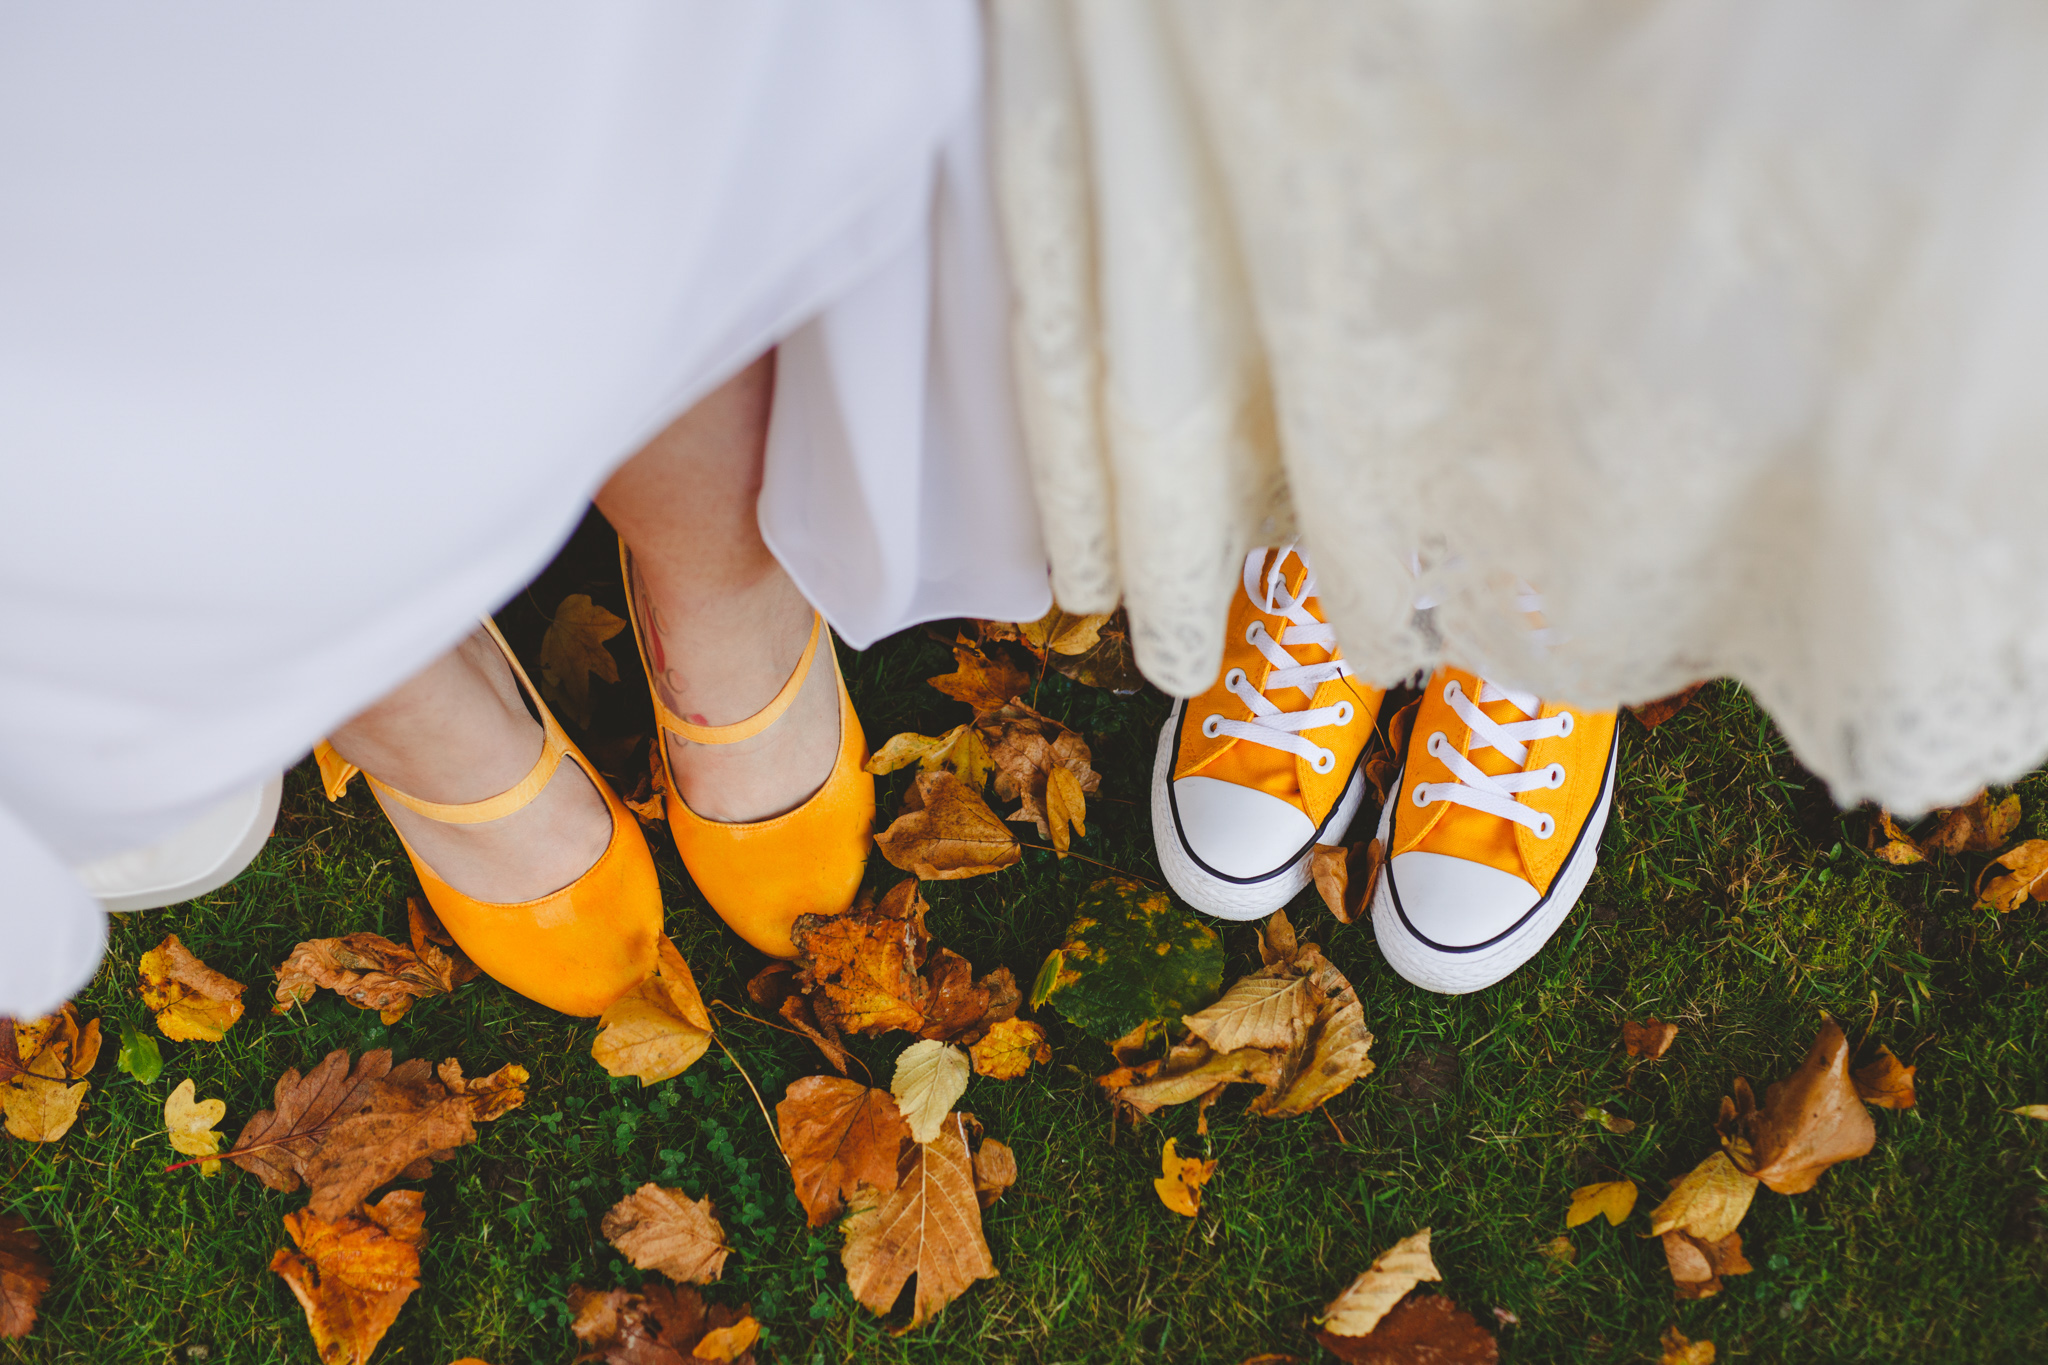 derbyshire-wedding-photographer-camera-hannah--138.jpg